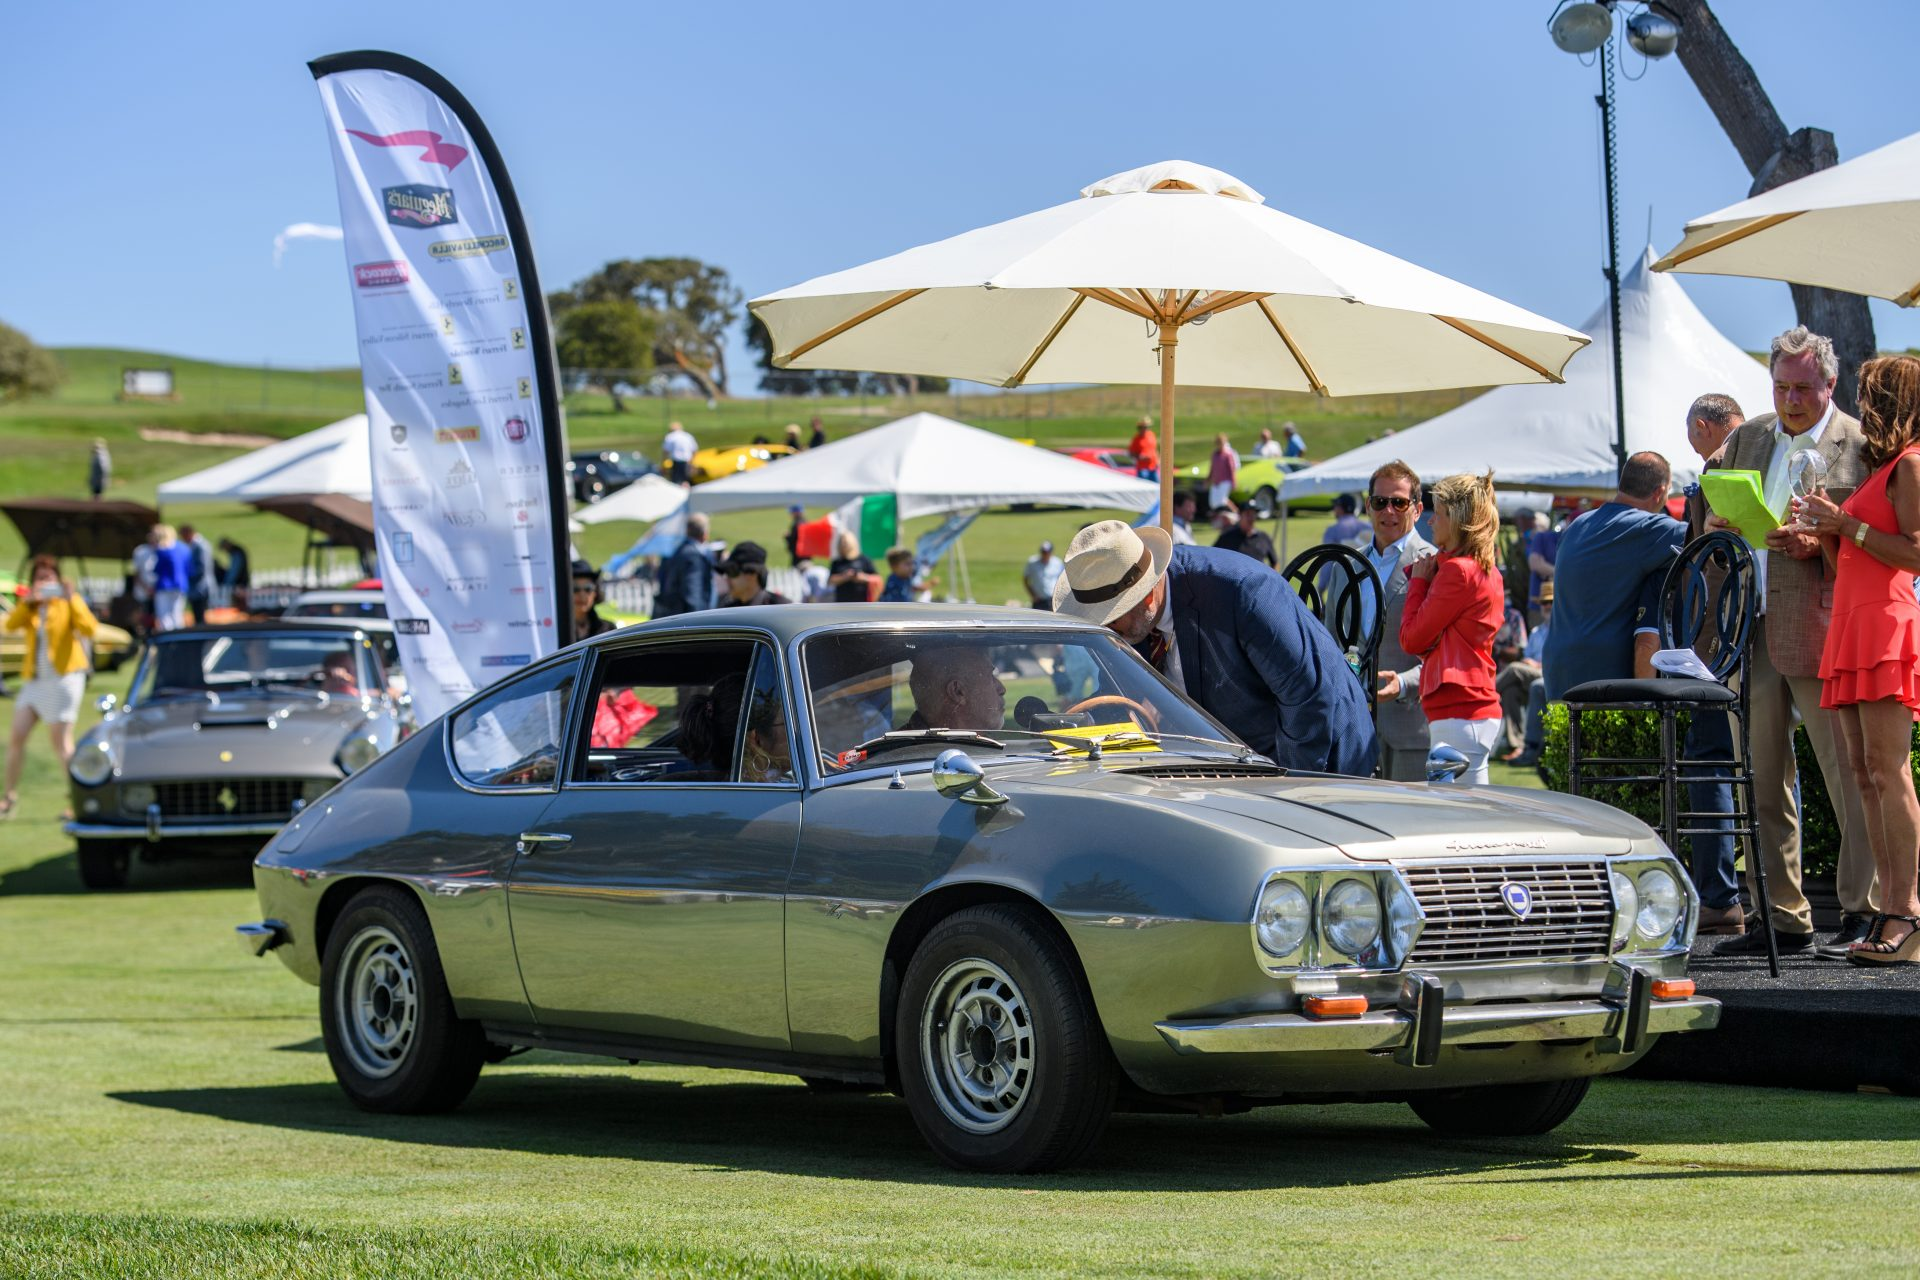 1st place Lancia: 1967 Lancia Fulvia Sport owned by Norman Schutzburger from Santa Cruz, CA